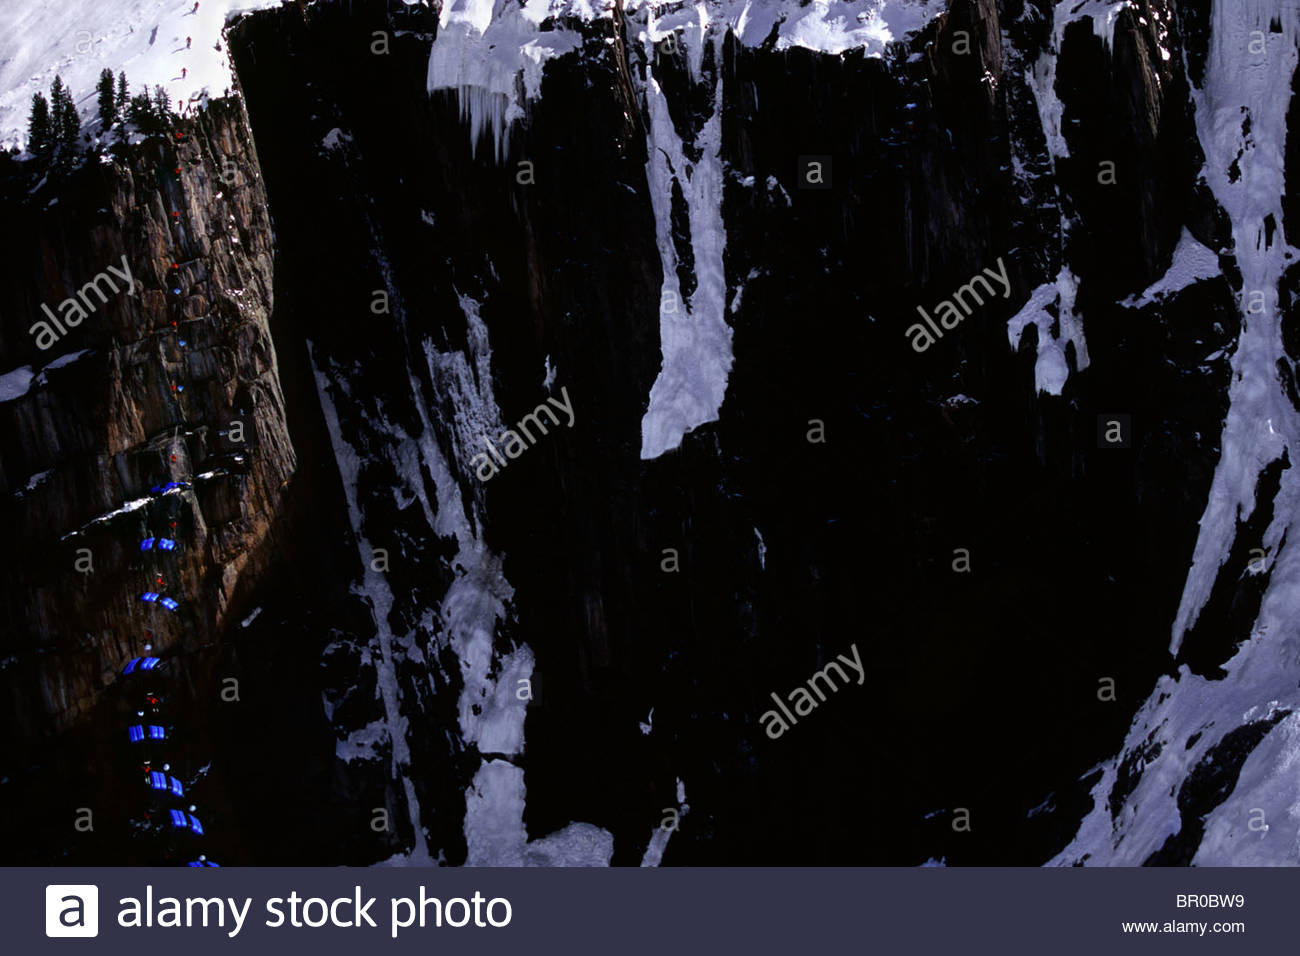 Skier basejumping from a cliff over the argentiere glacier.  Chamonix, France. - Stock Image